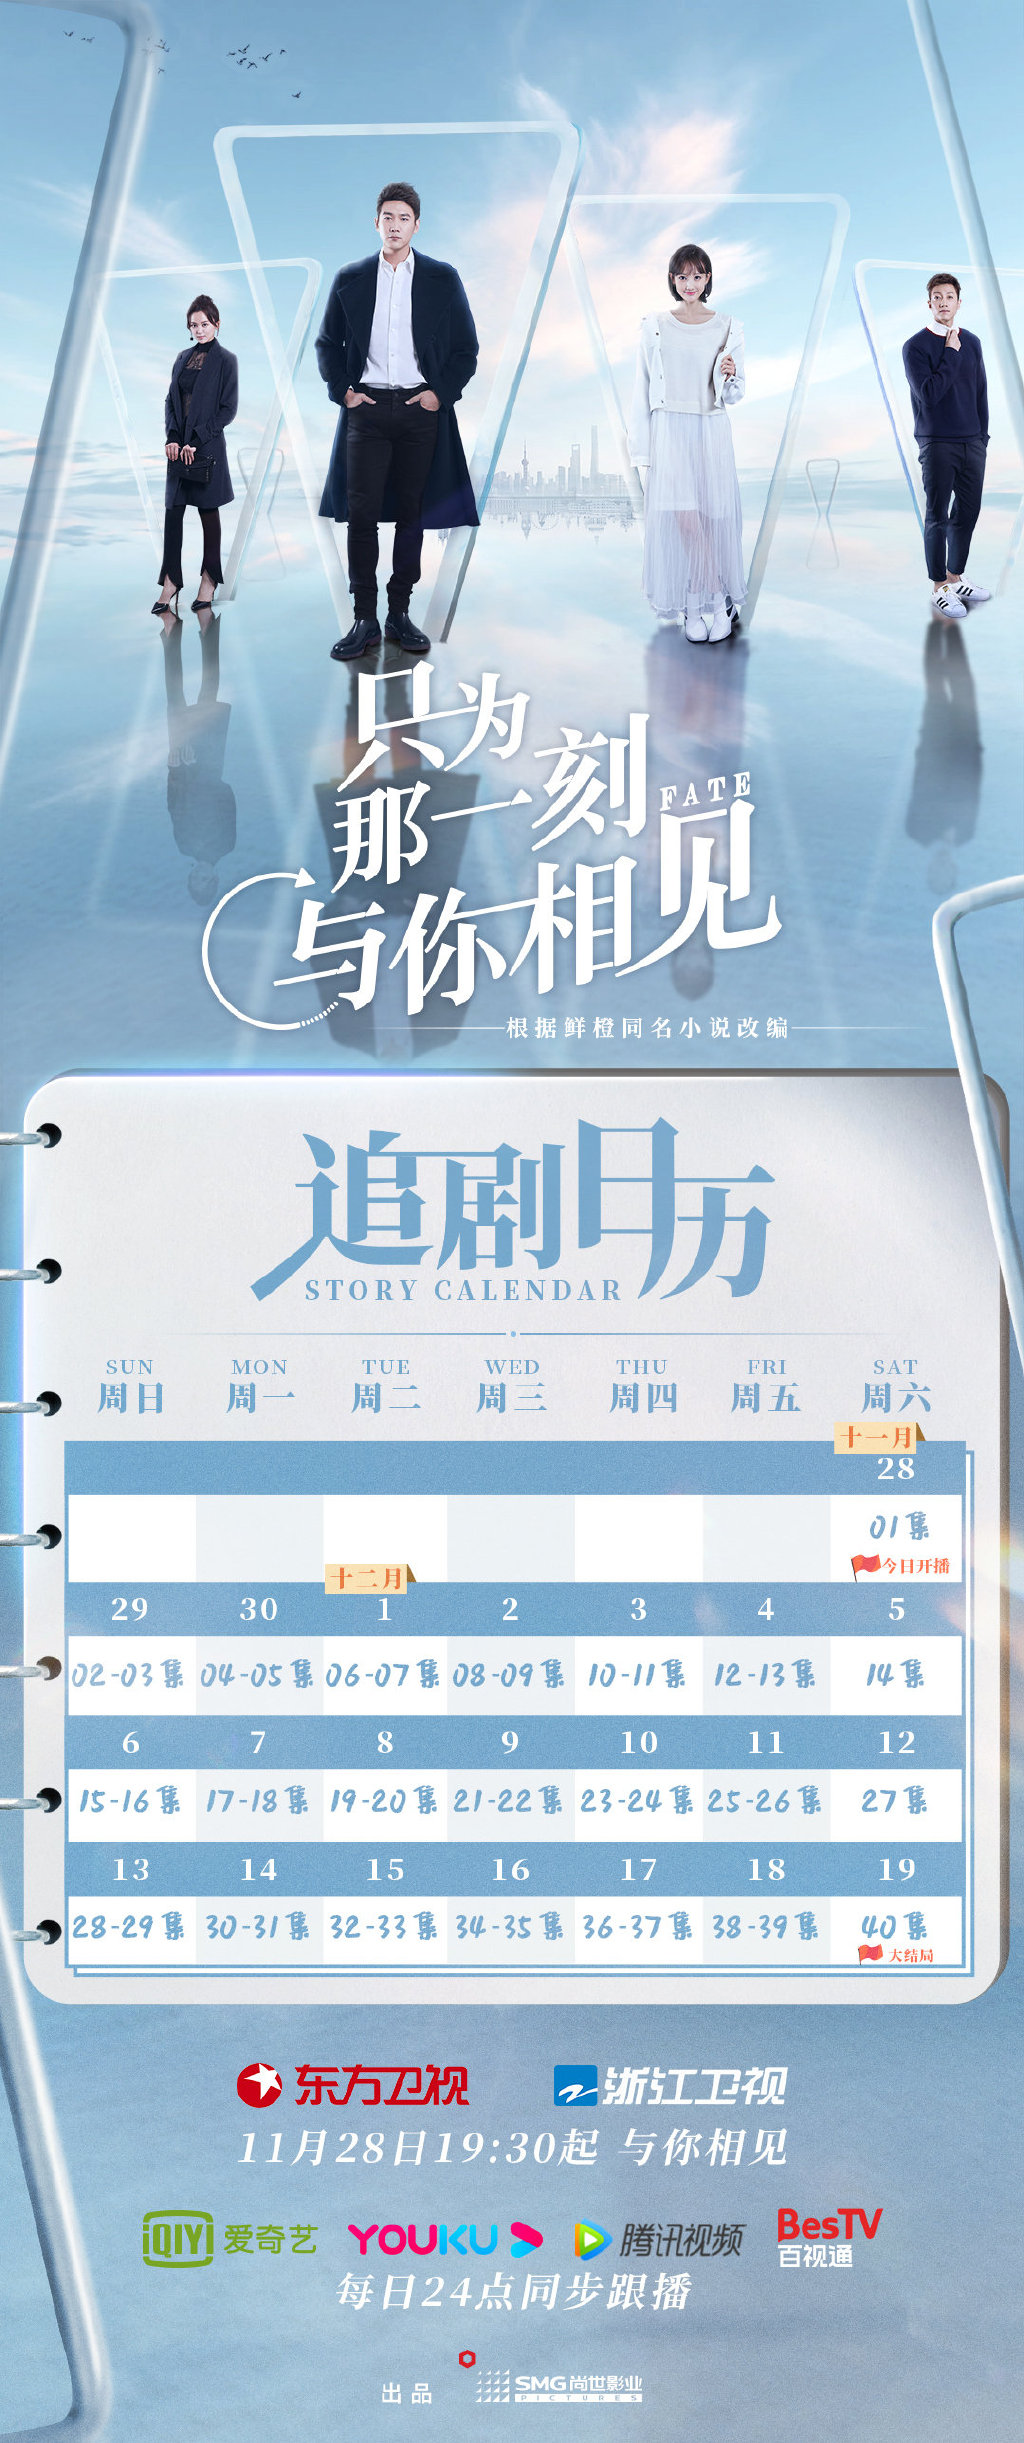 Just To See You Chinese Drama Airing Calendar